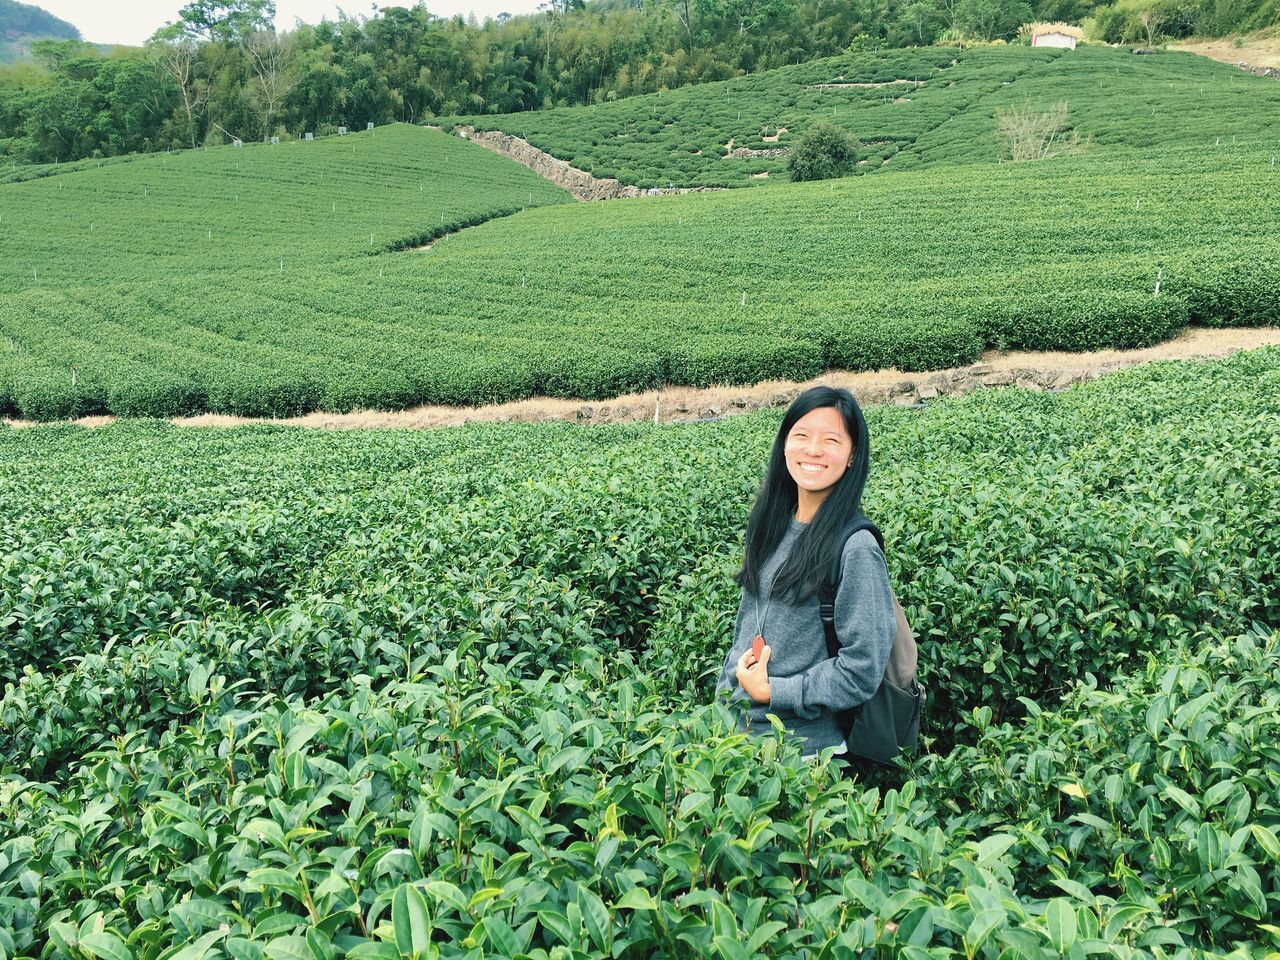 farm, only women, agriculture, one person, women, working, black hair, adult, green color, tea crop, real people, one woman only, plant, young adult, occupation, young women, field, looking at camera, businesswoman, nature, portrait, outdoors, smiling, rural scene, business, growth, people, adults only, cheerful, scenics, beauty in nature, beauty, day, freshness, full length, one young woman only, manual worker